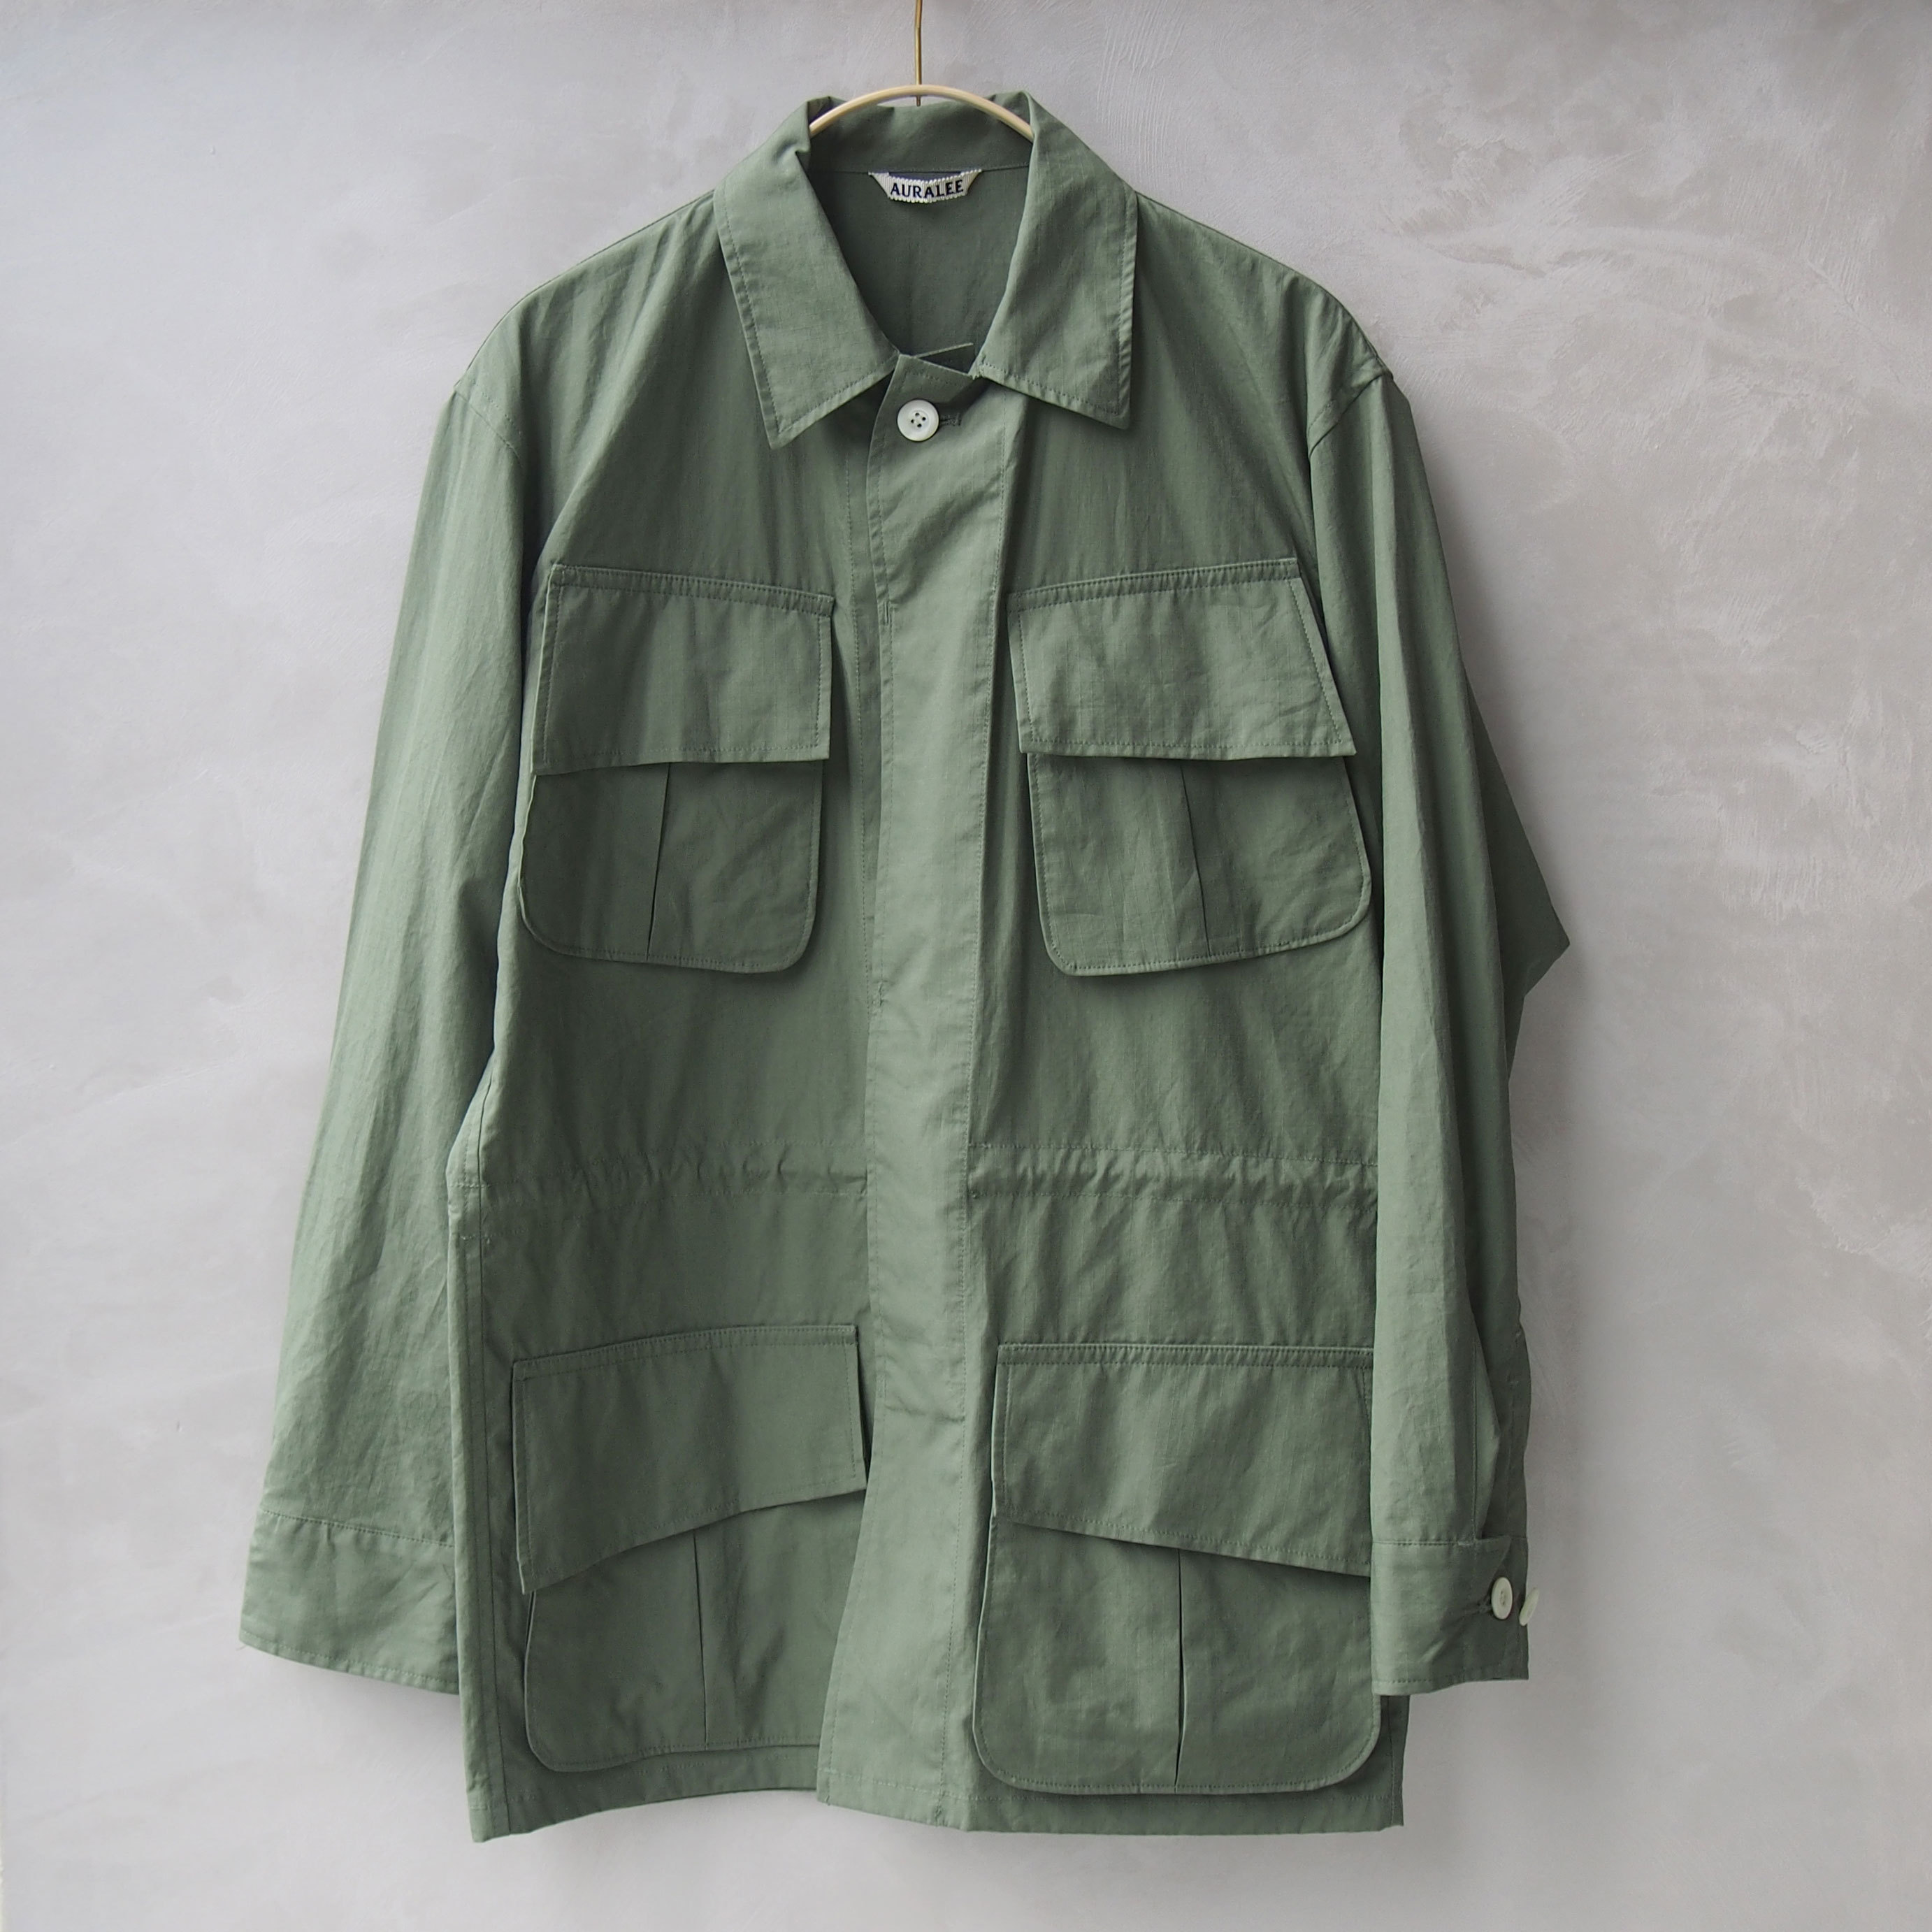 AURALEE WASHED FINX RIPSTOP FATIGUE JACKET OLIVE GREEN